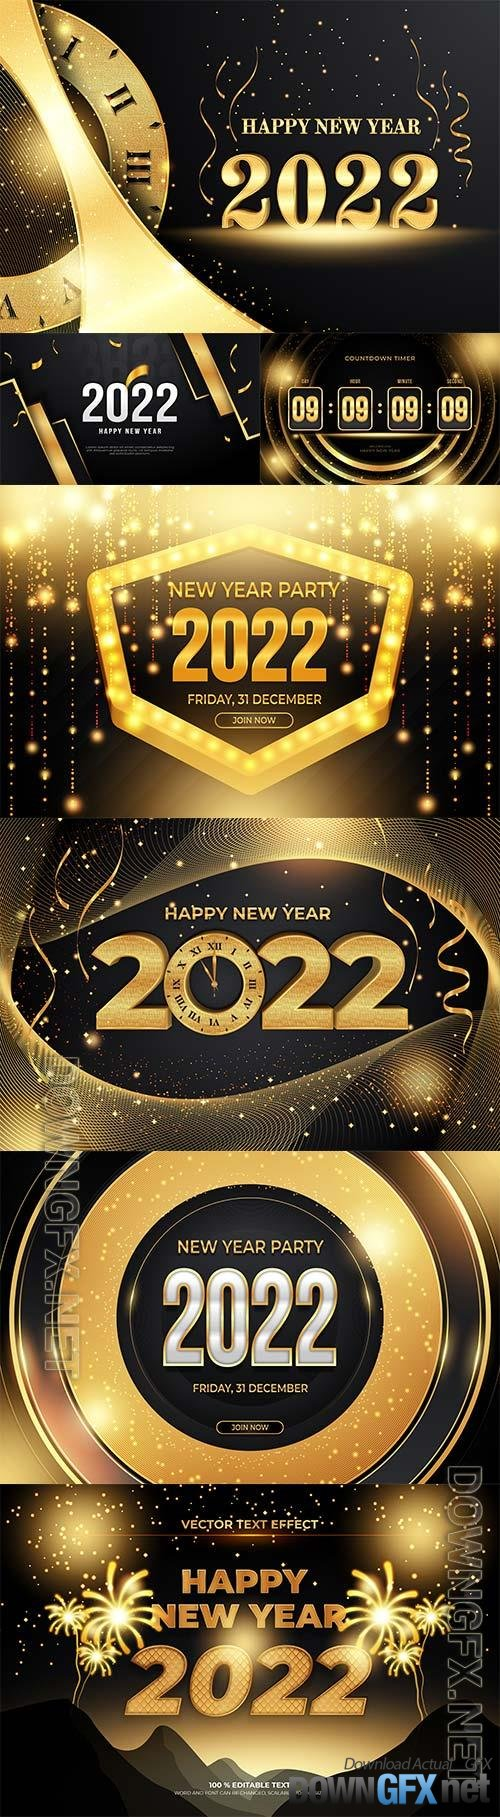 Happy new year editable text effect with black gold backround style premium vector